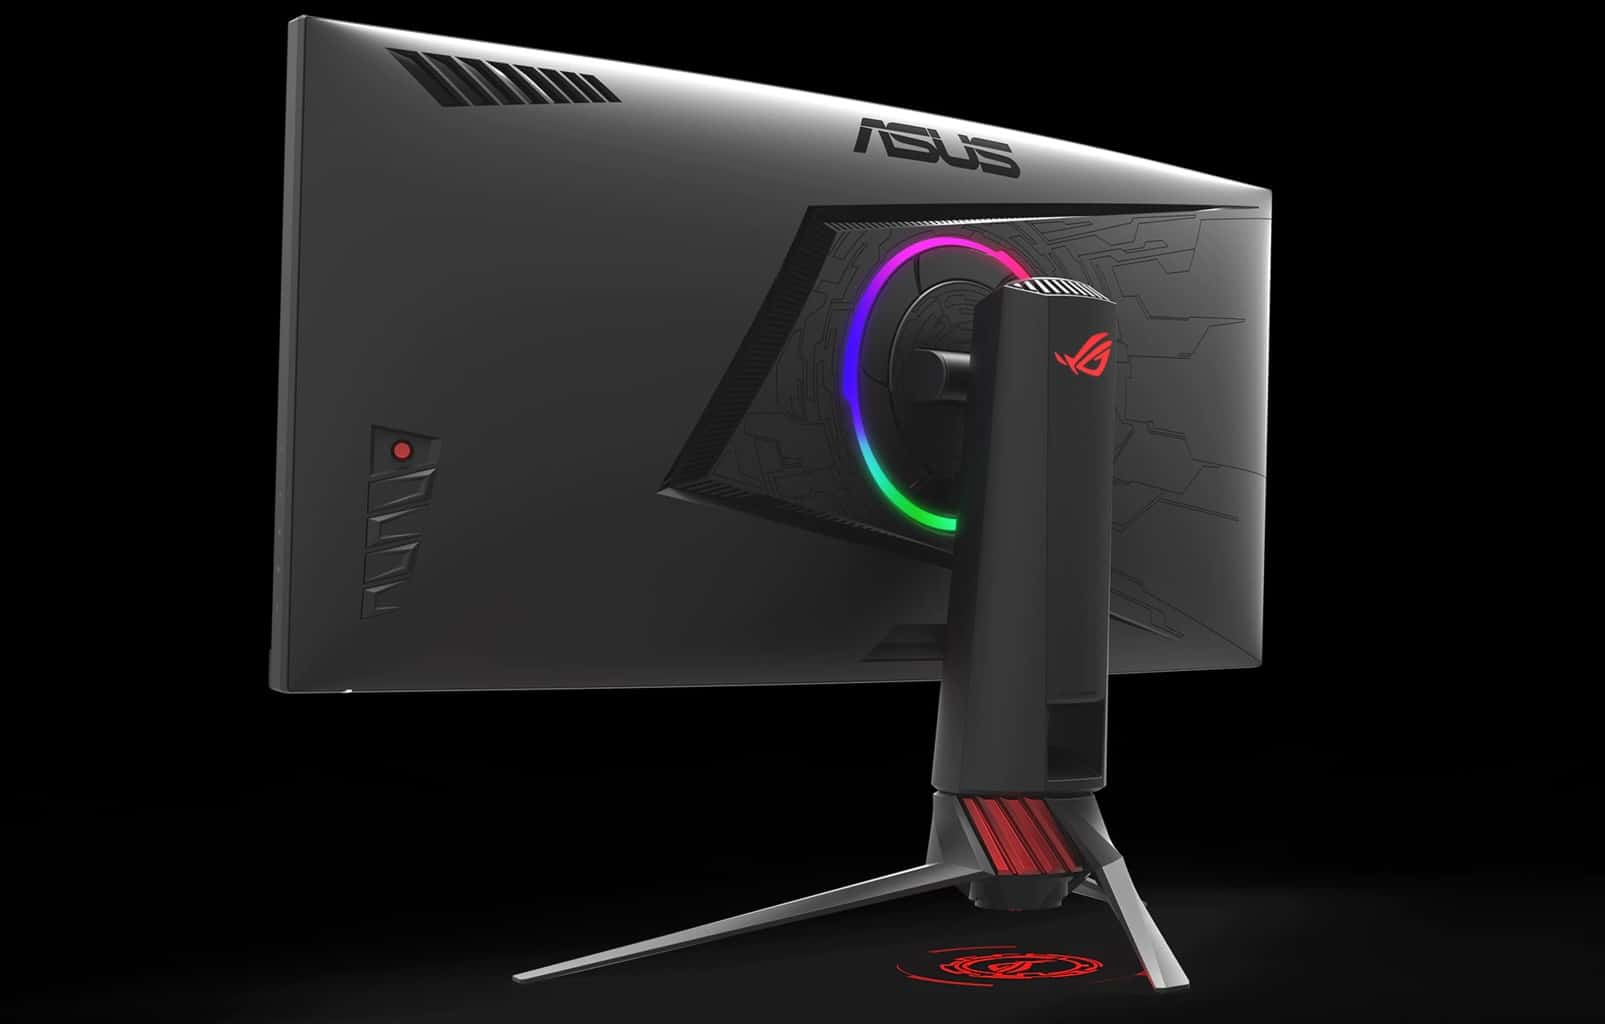 ASUS ROG Strix XG35VQ Amazon